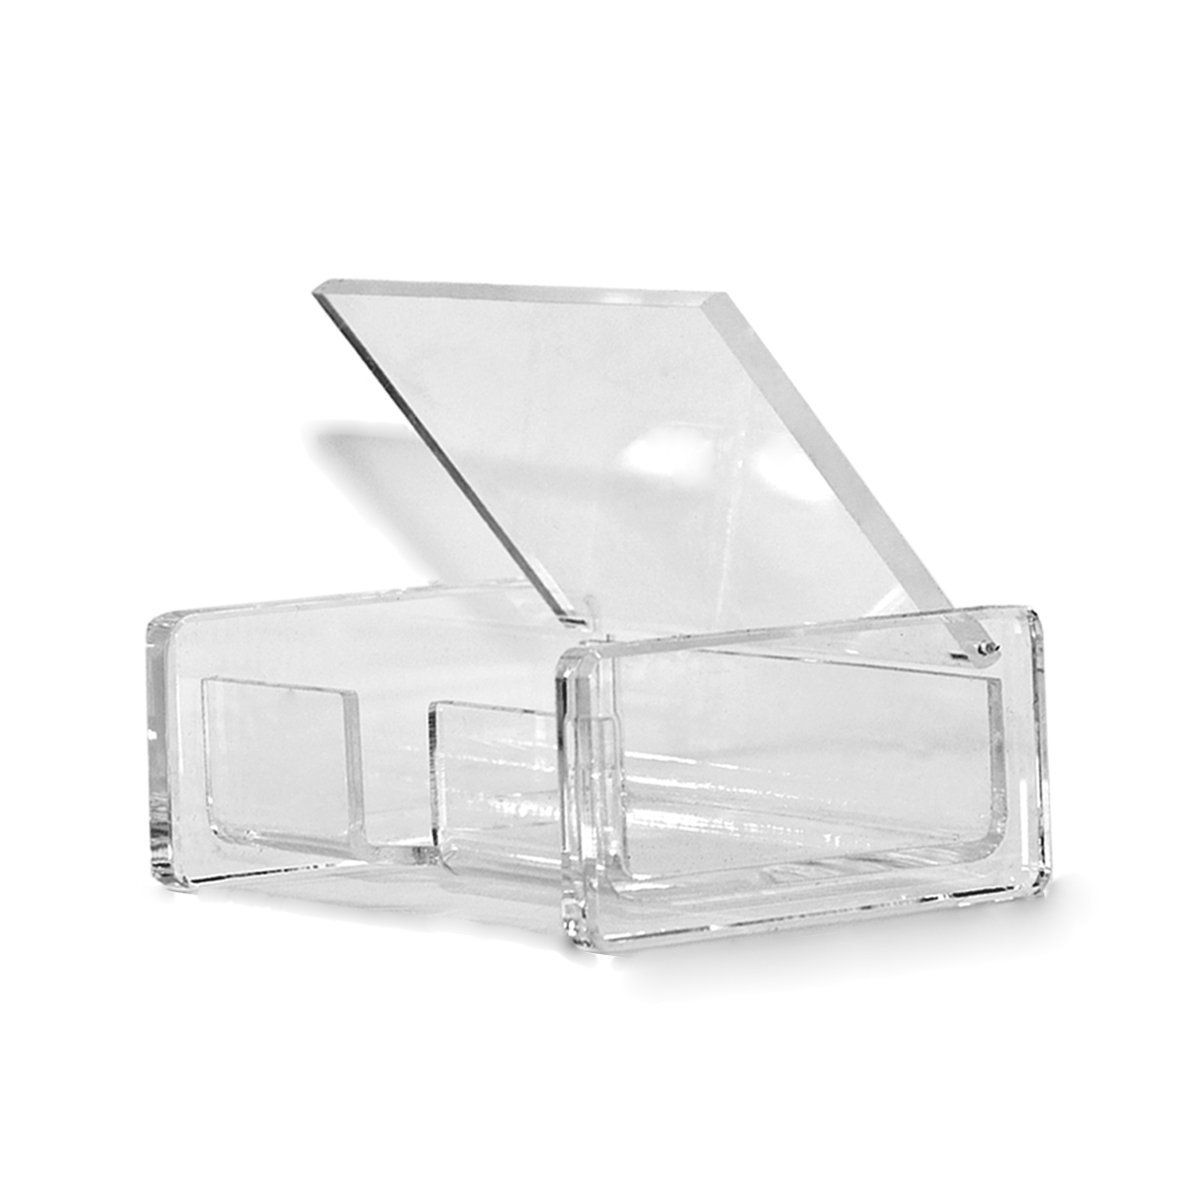 Amazon.com : Combination of Life Desktop Clear Acrylic Business Card ...